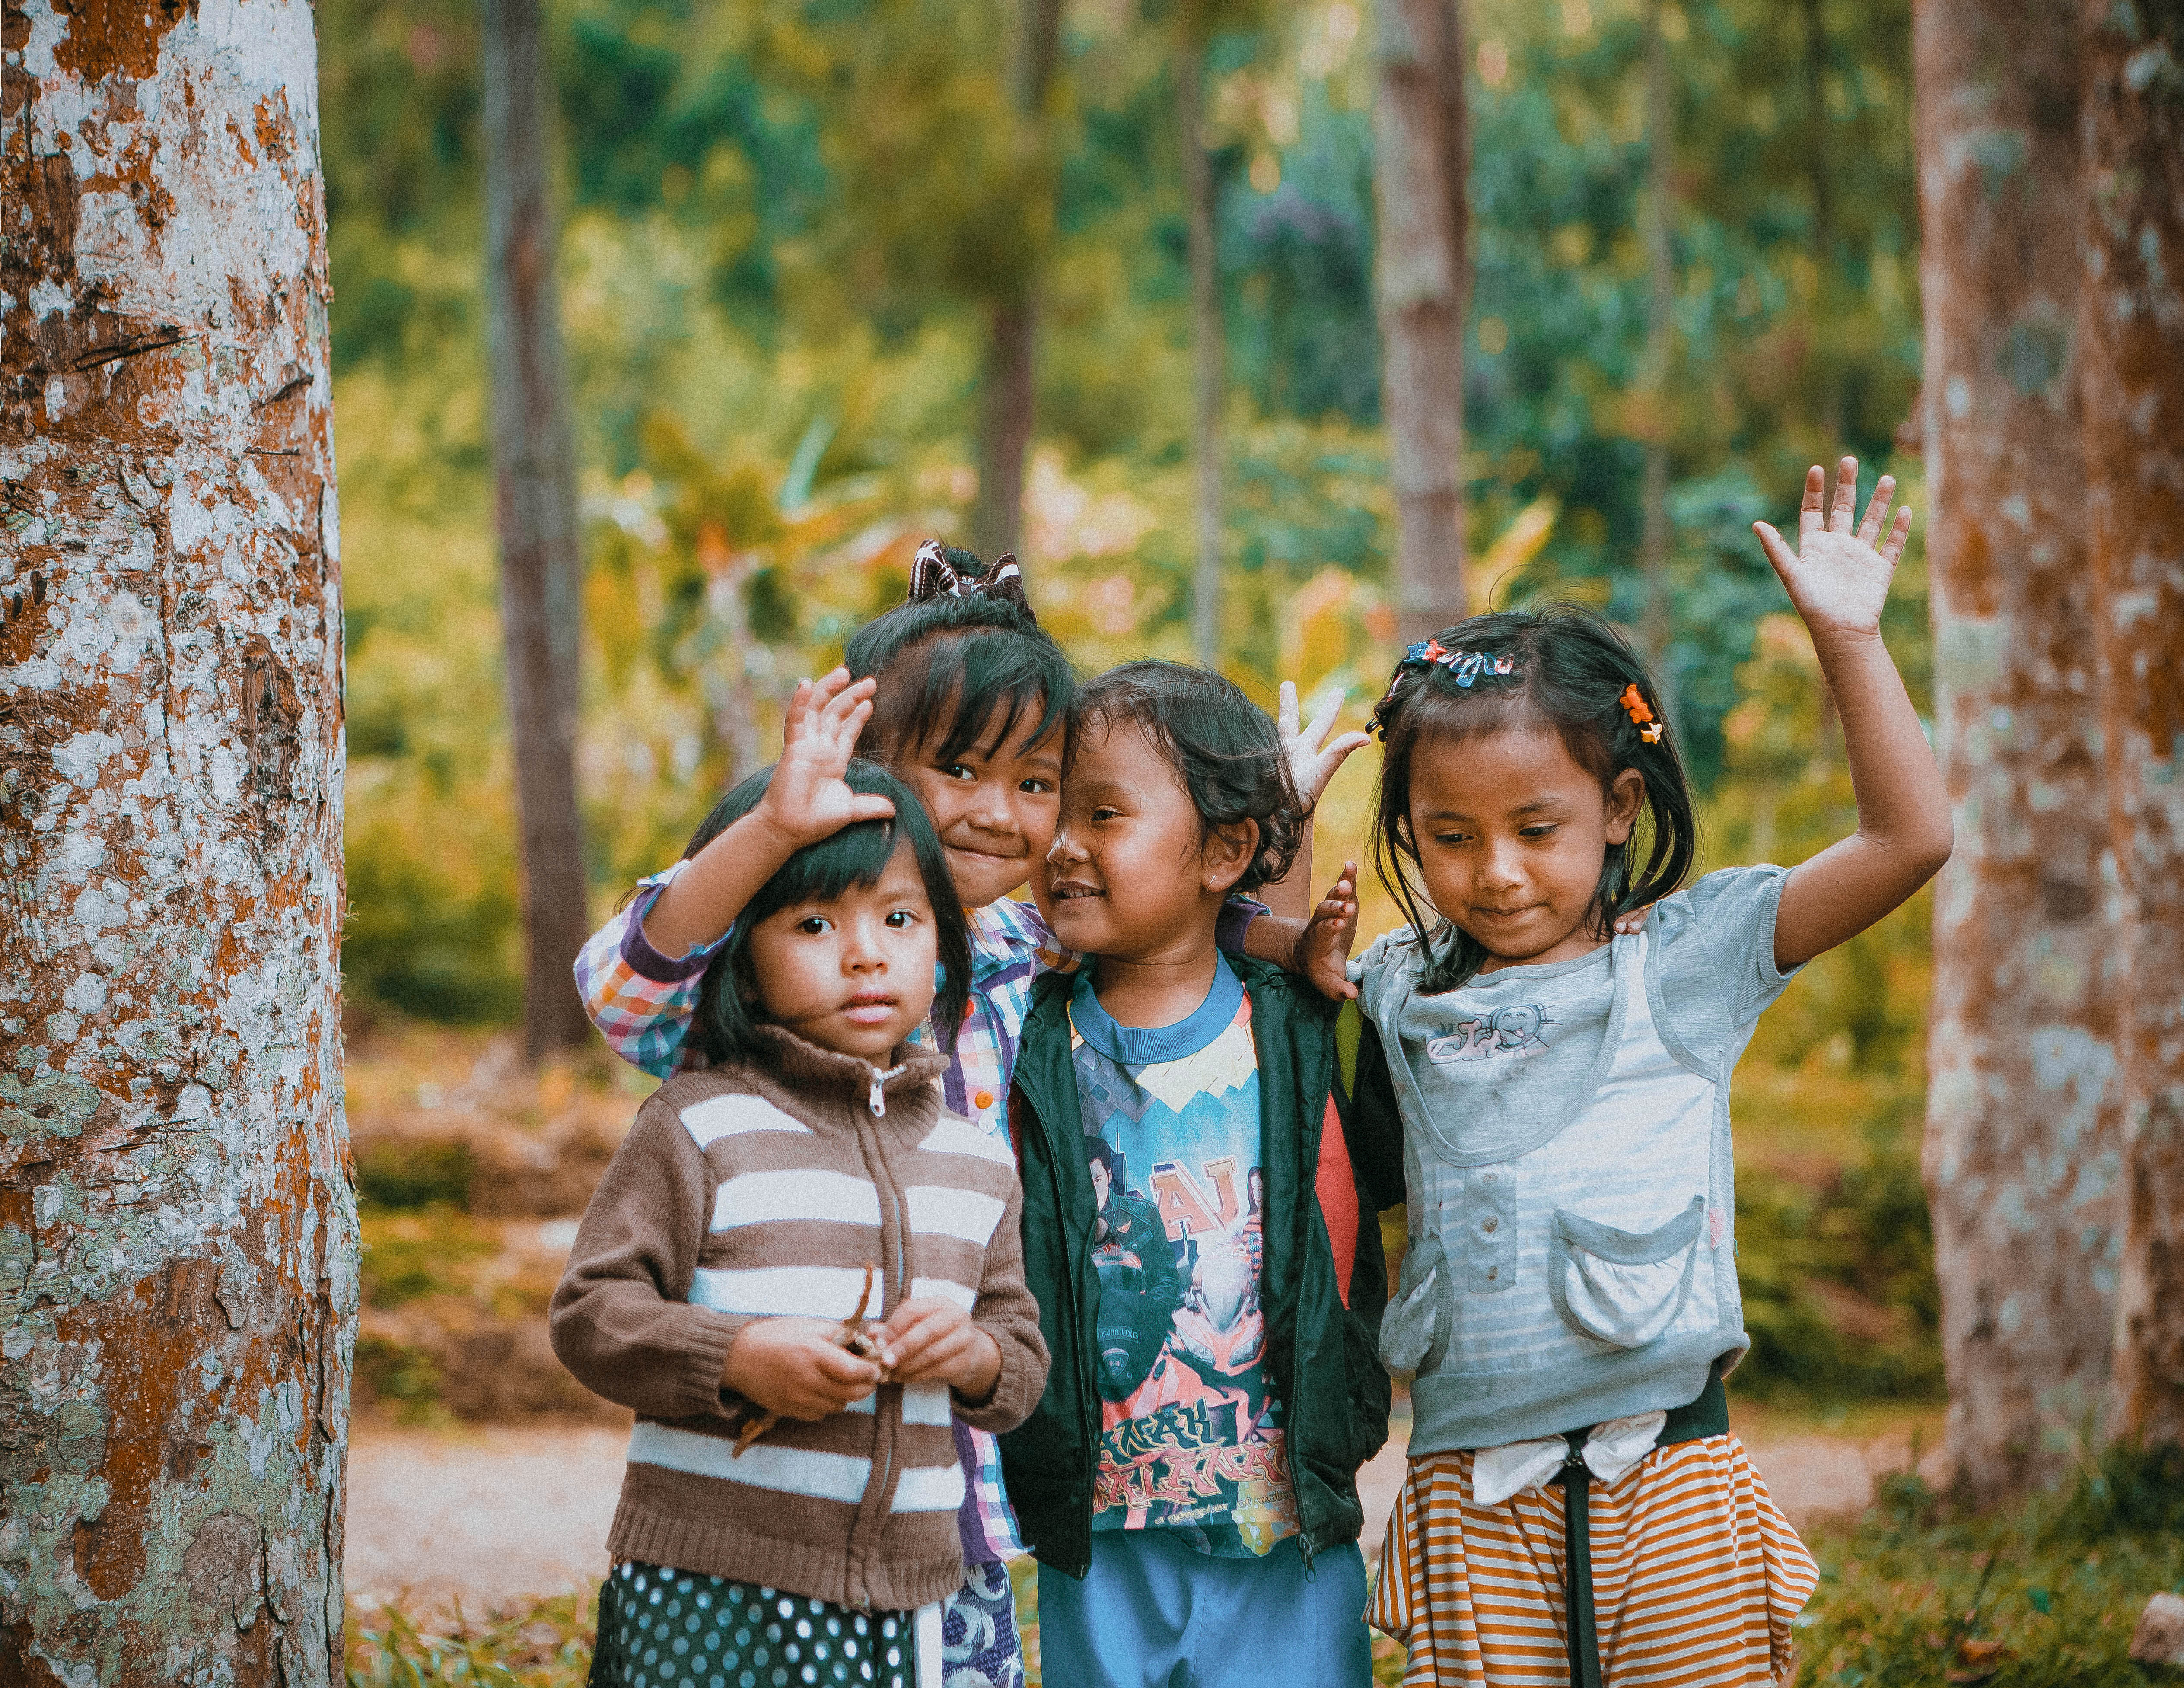 kids local people in bandung west province culture everyday life local community smiley children